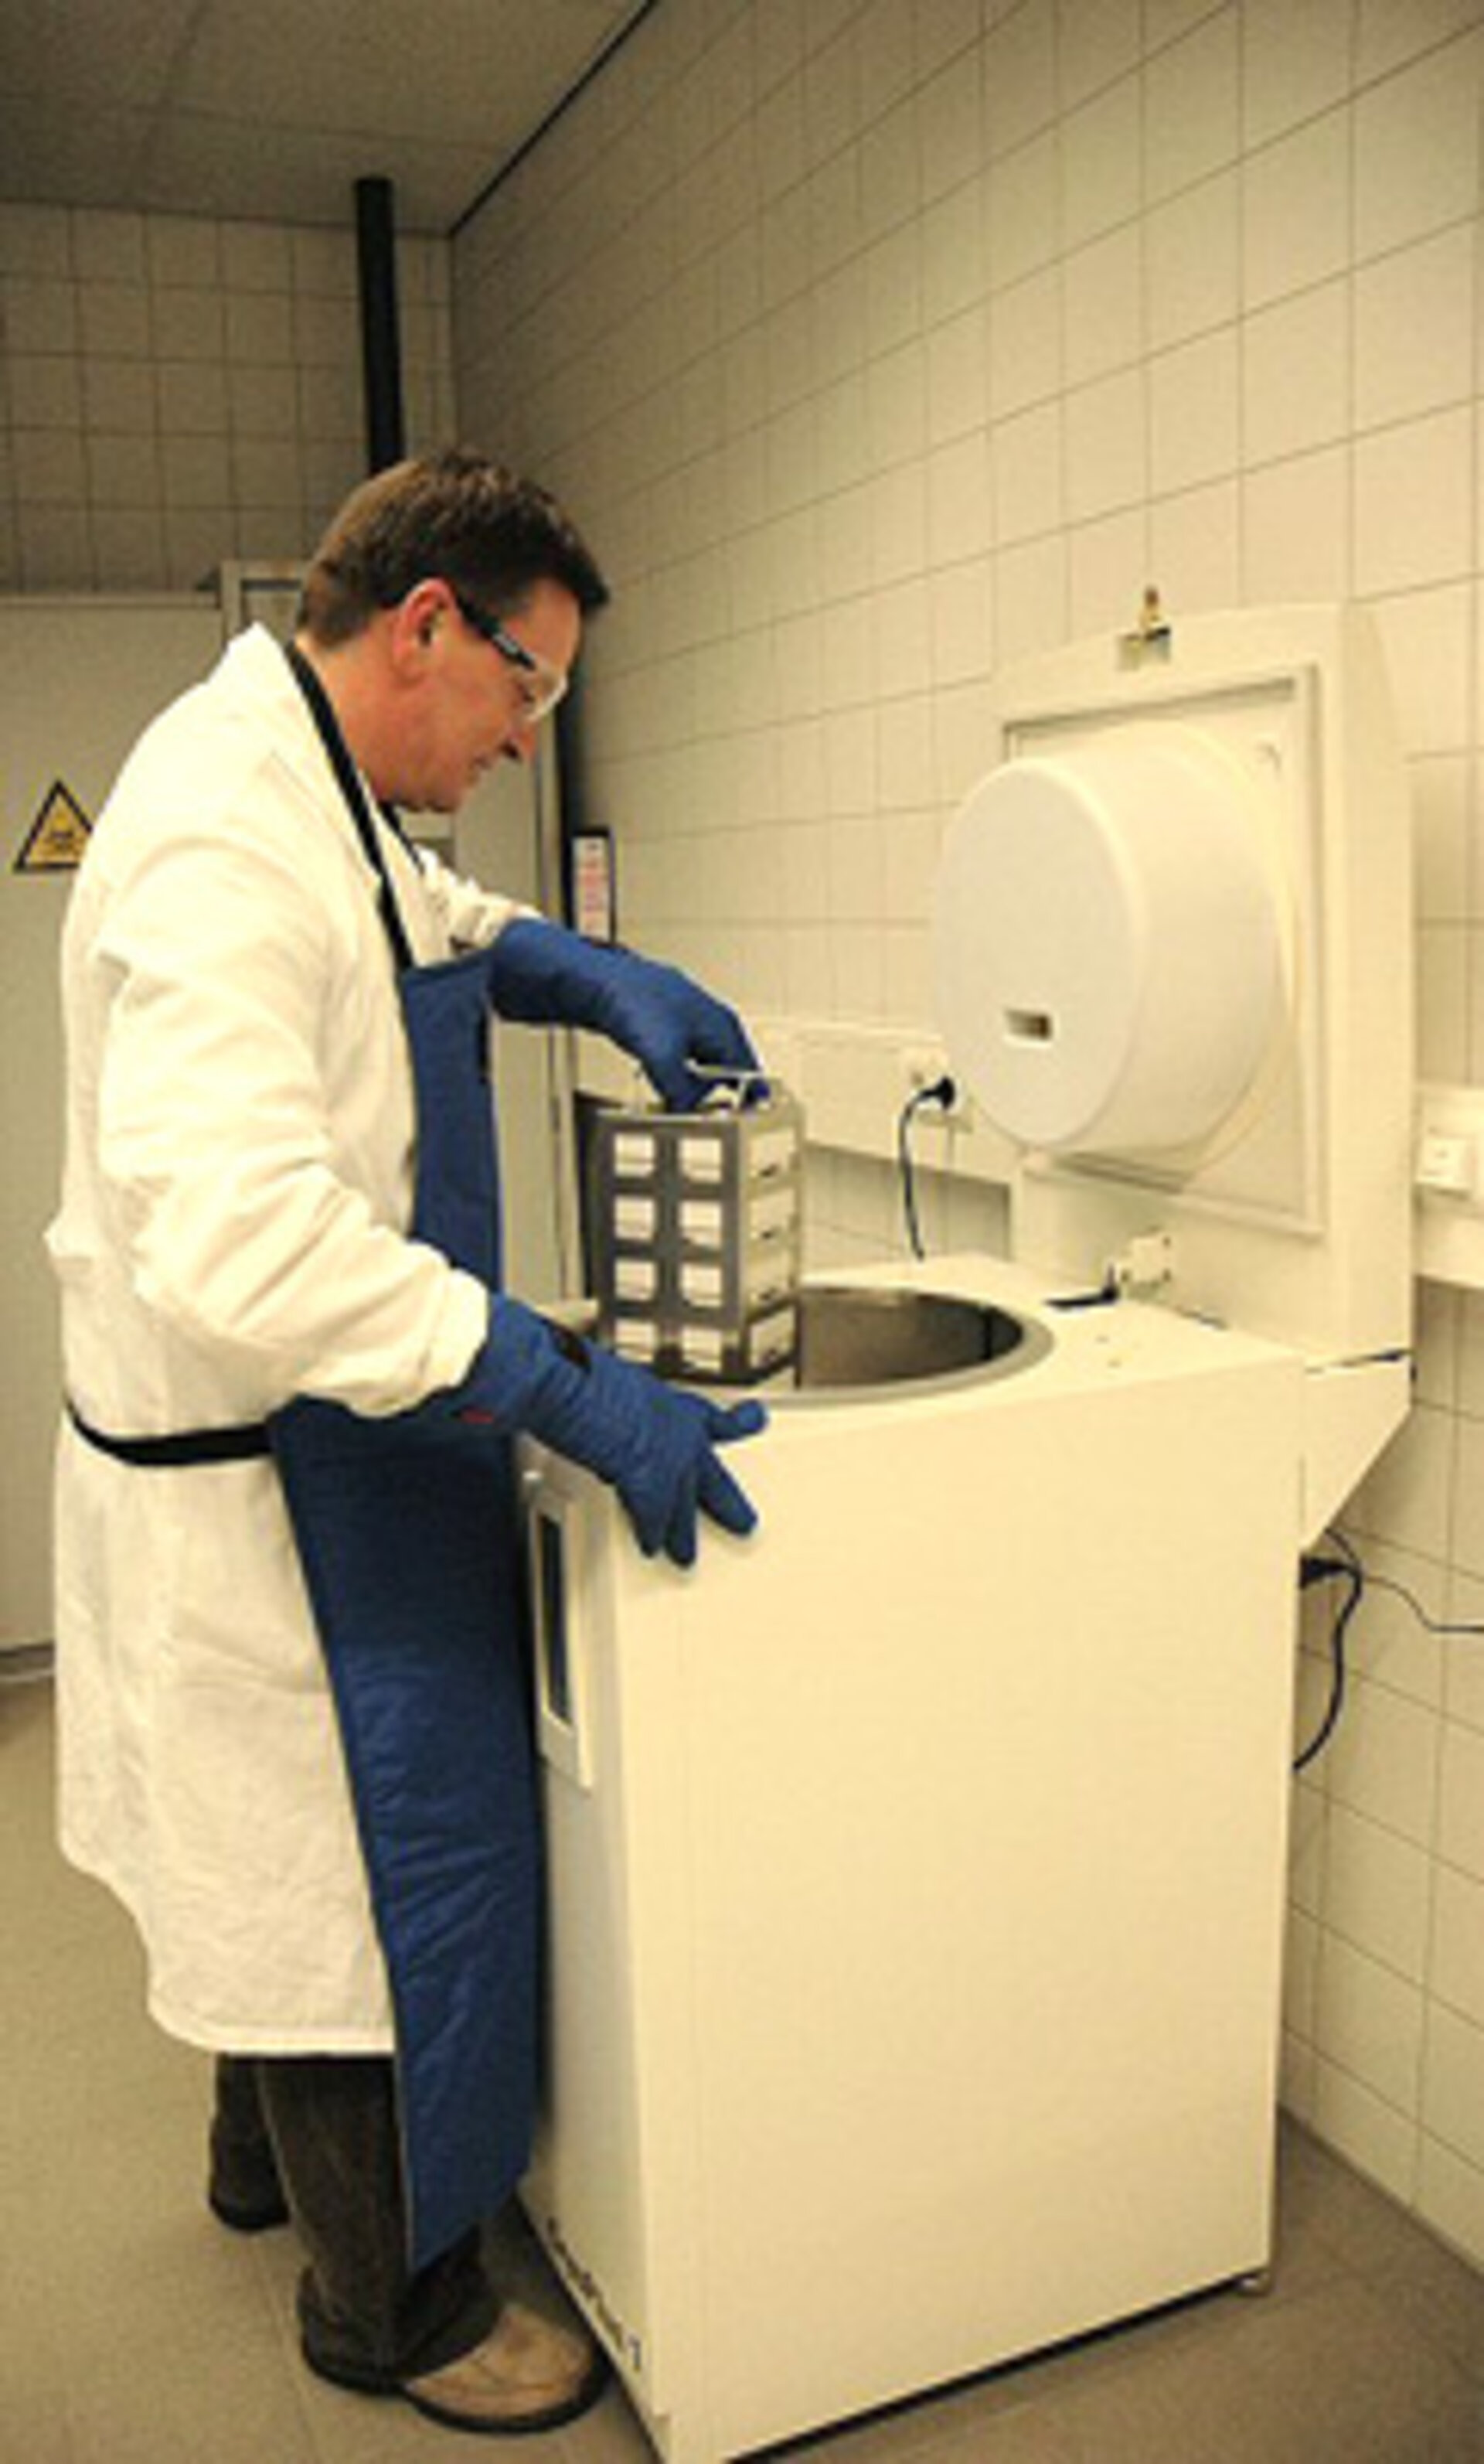 Removing samples from low temperature storage